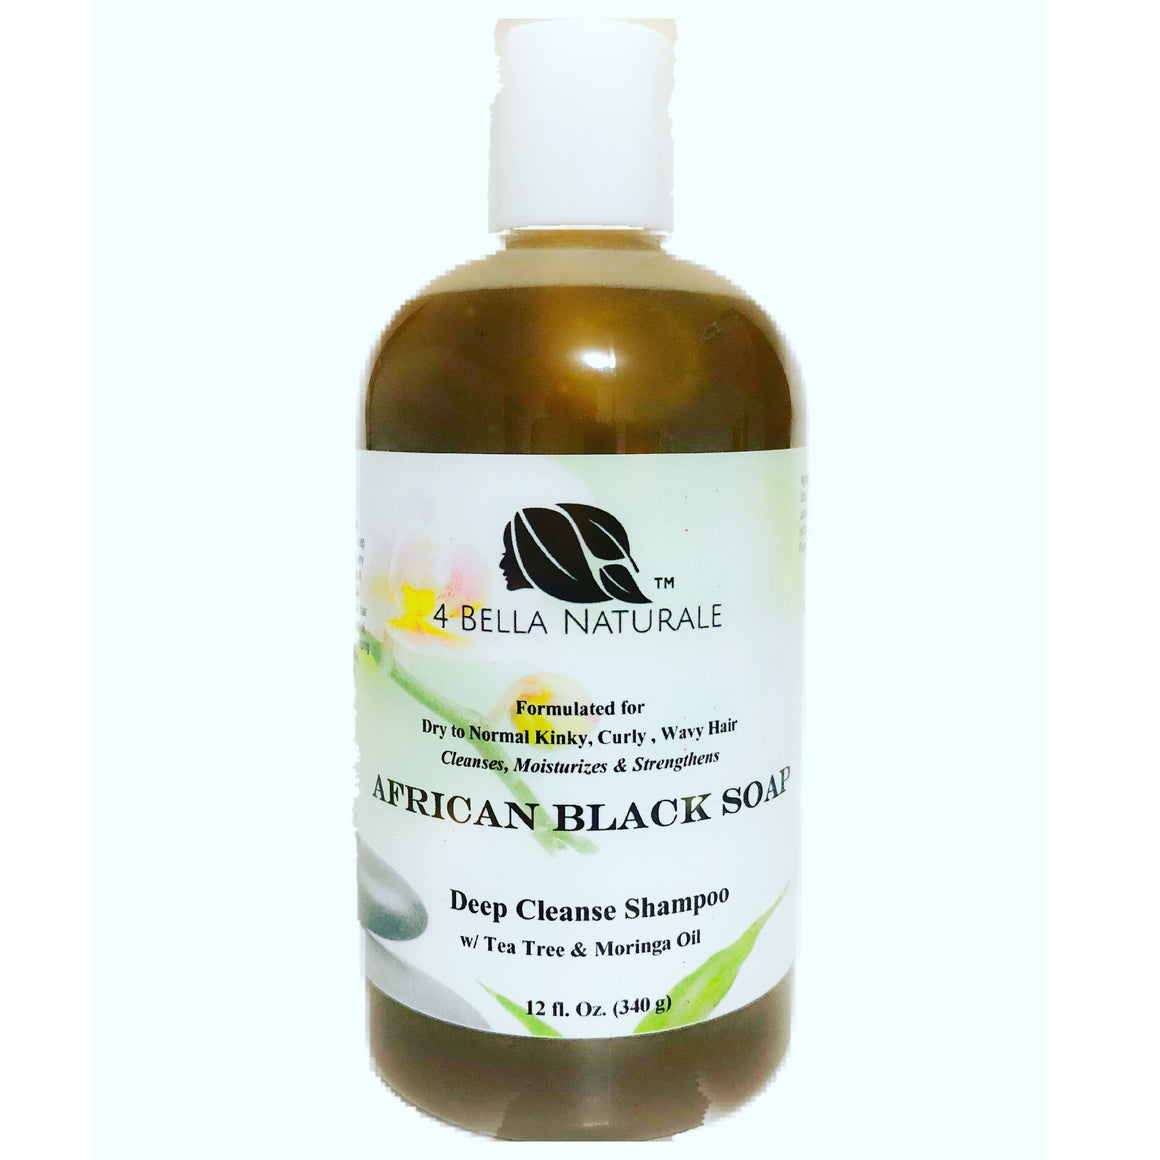 African Black Soap Deep Cleanse Shampoo